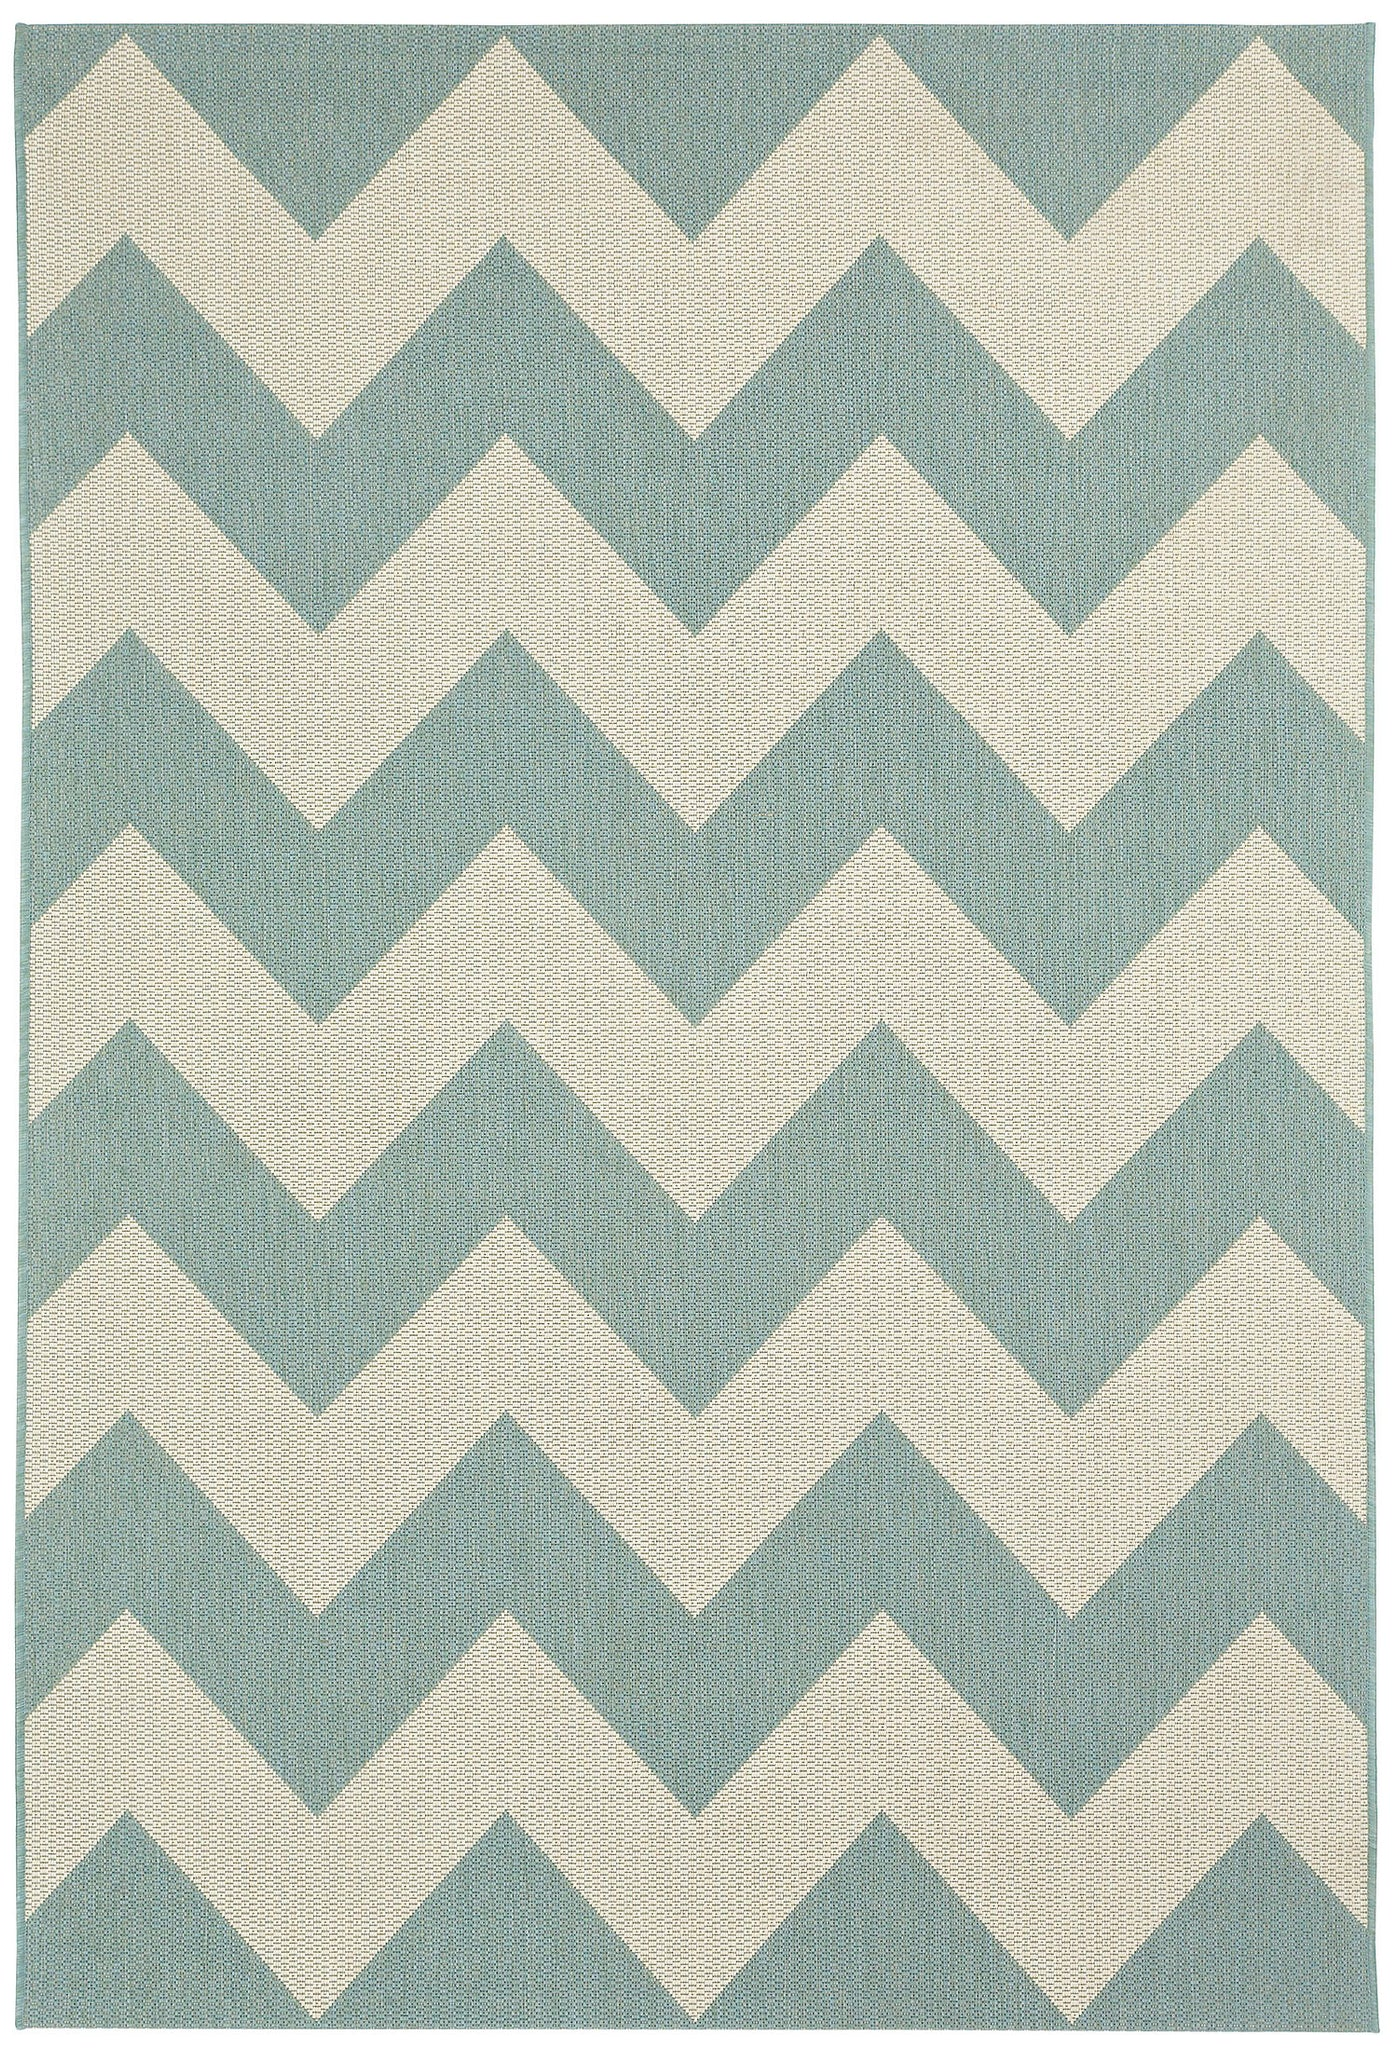 Capel Elsinore Chevron 4726 Resort Blue 420 Area Rug main image